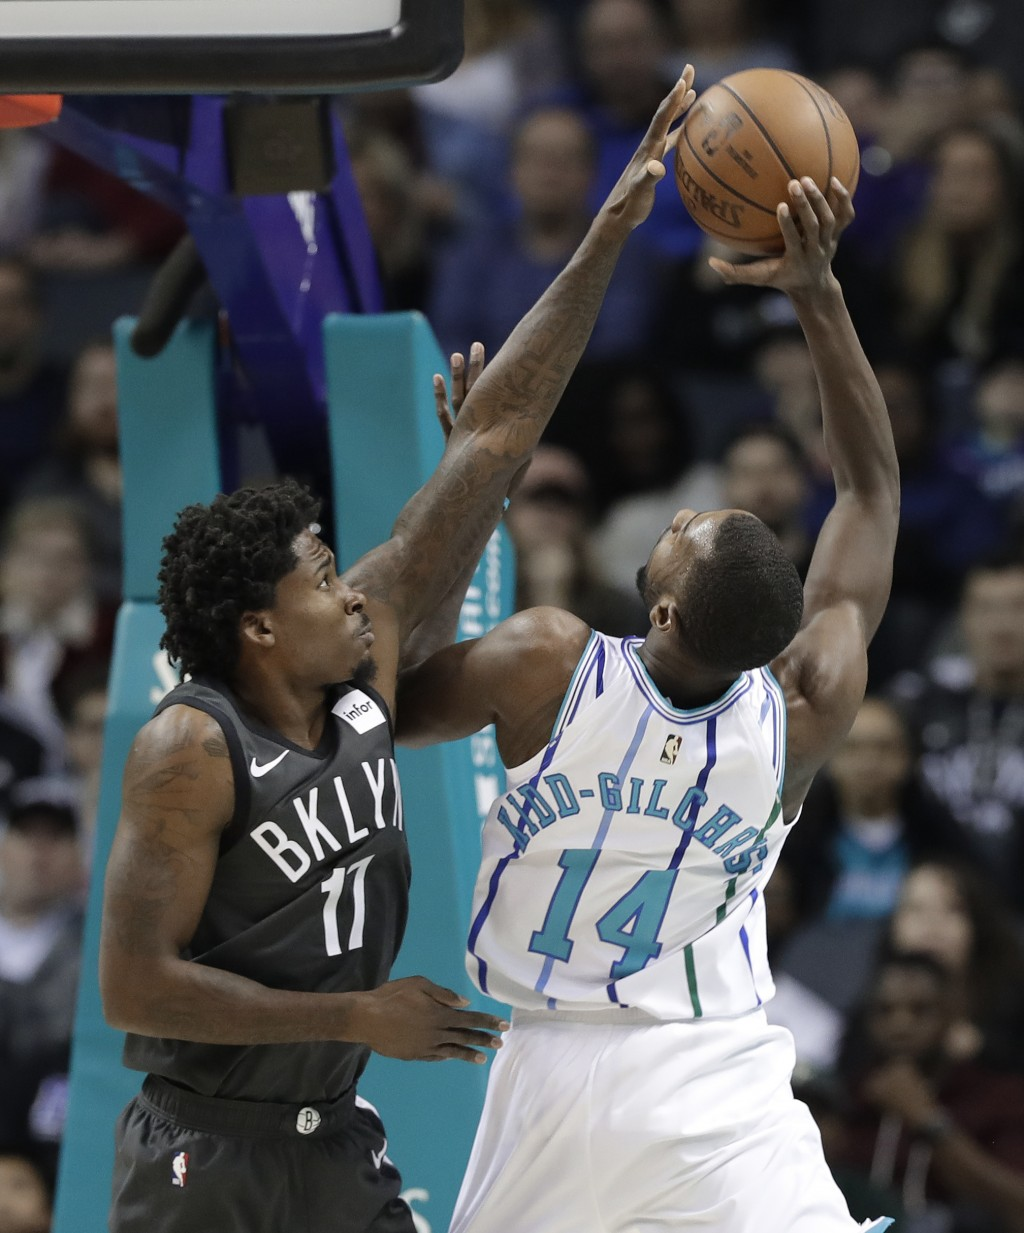 Brooklyn Nets' Ed Davis (17) blocks a shot by Charlotte Hornets' Michael Kidd-Gilchrist (14) during the first half of an NBA basketball game in Charlo...